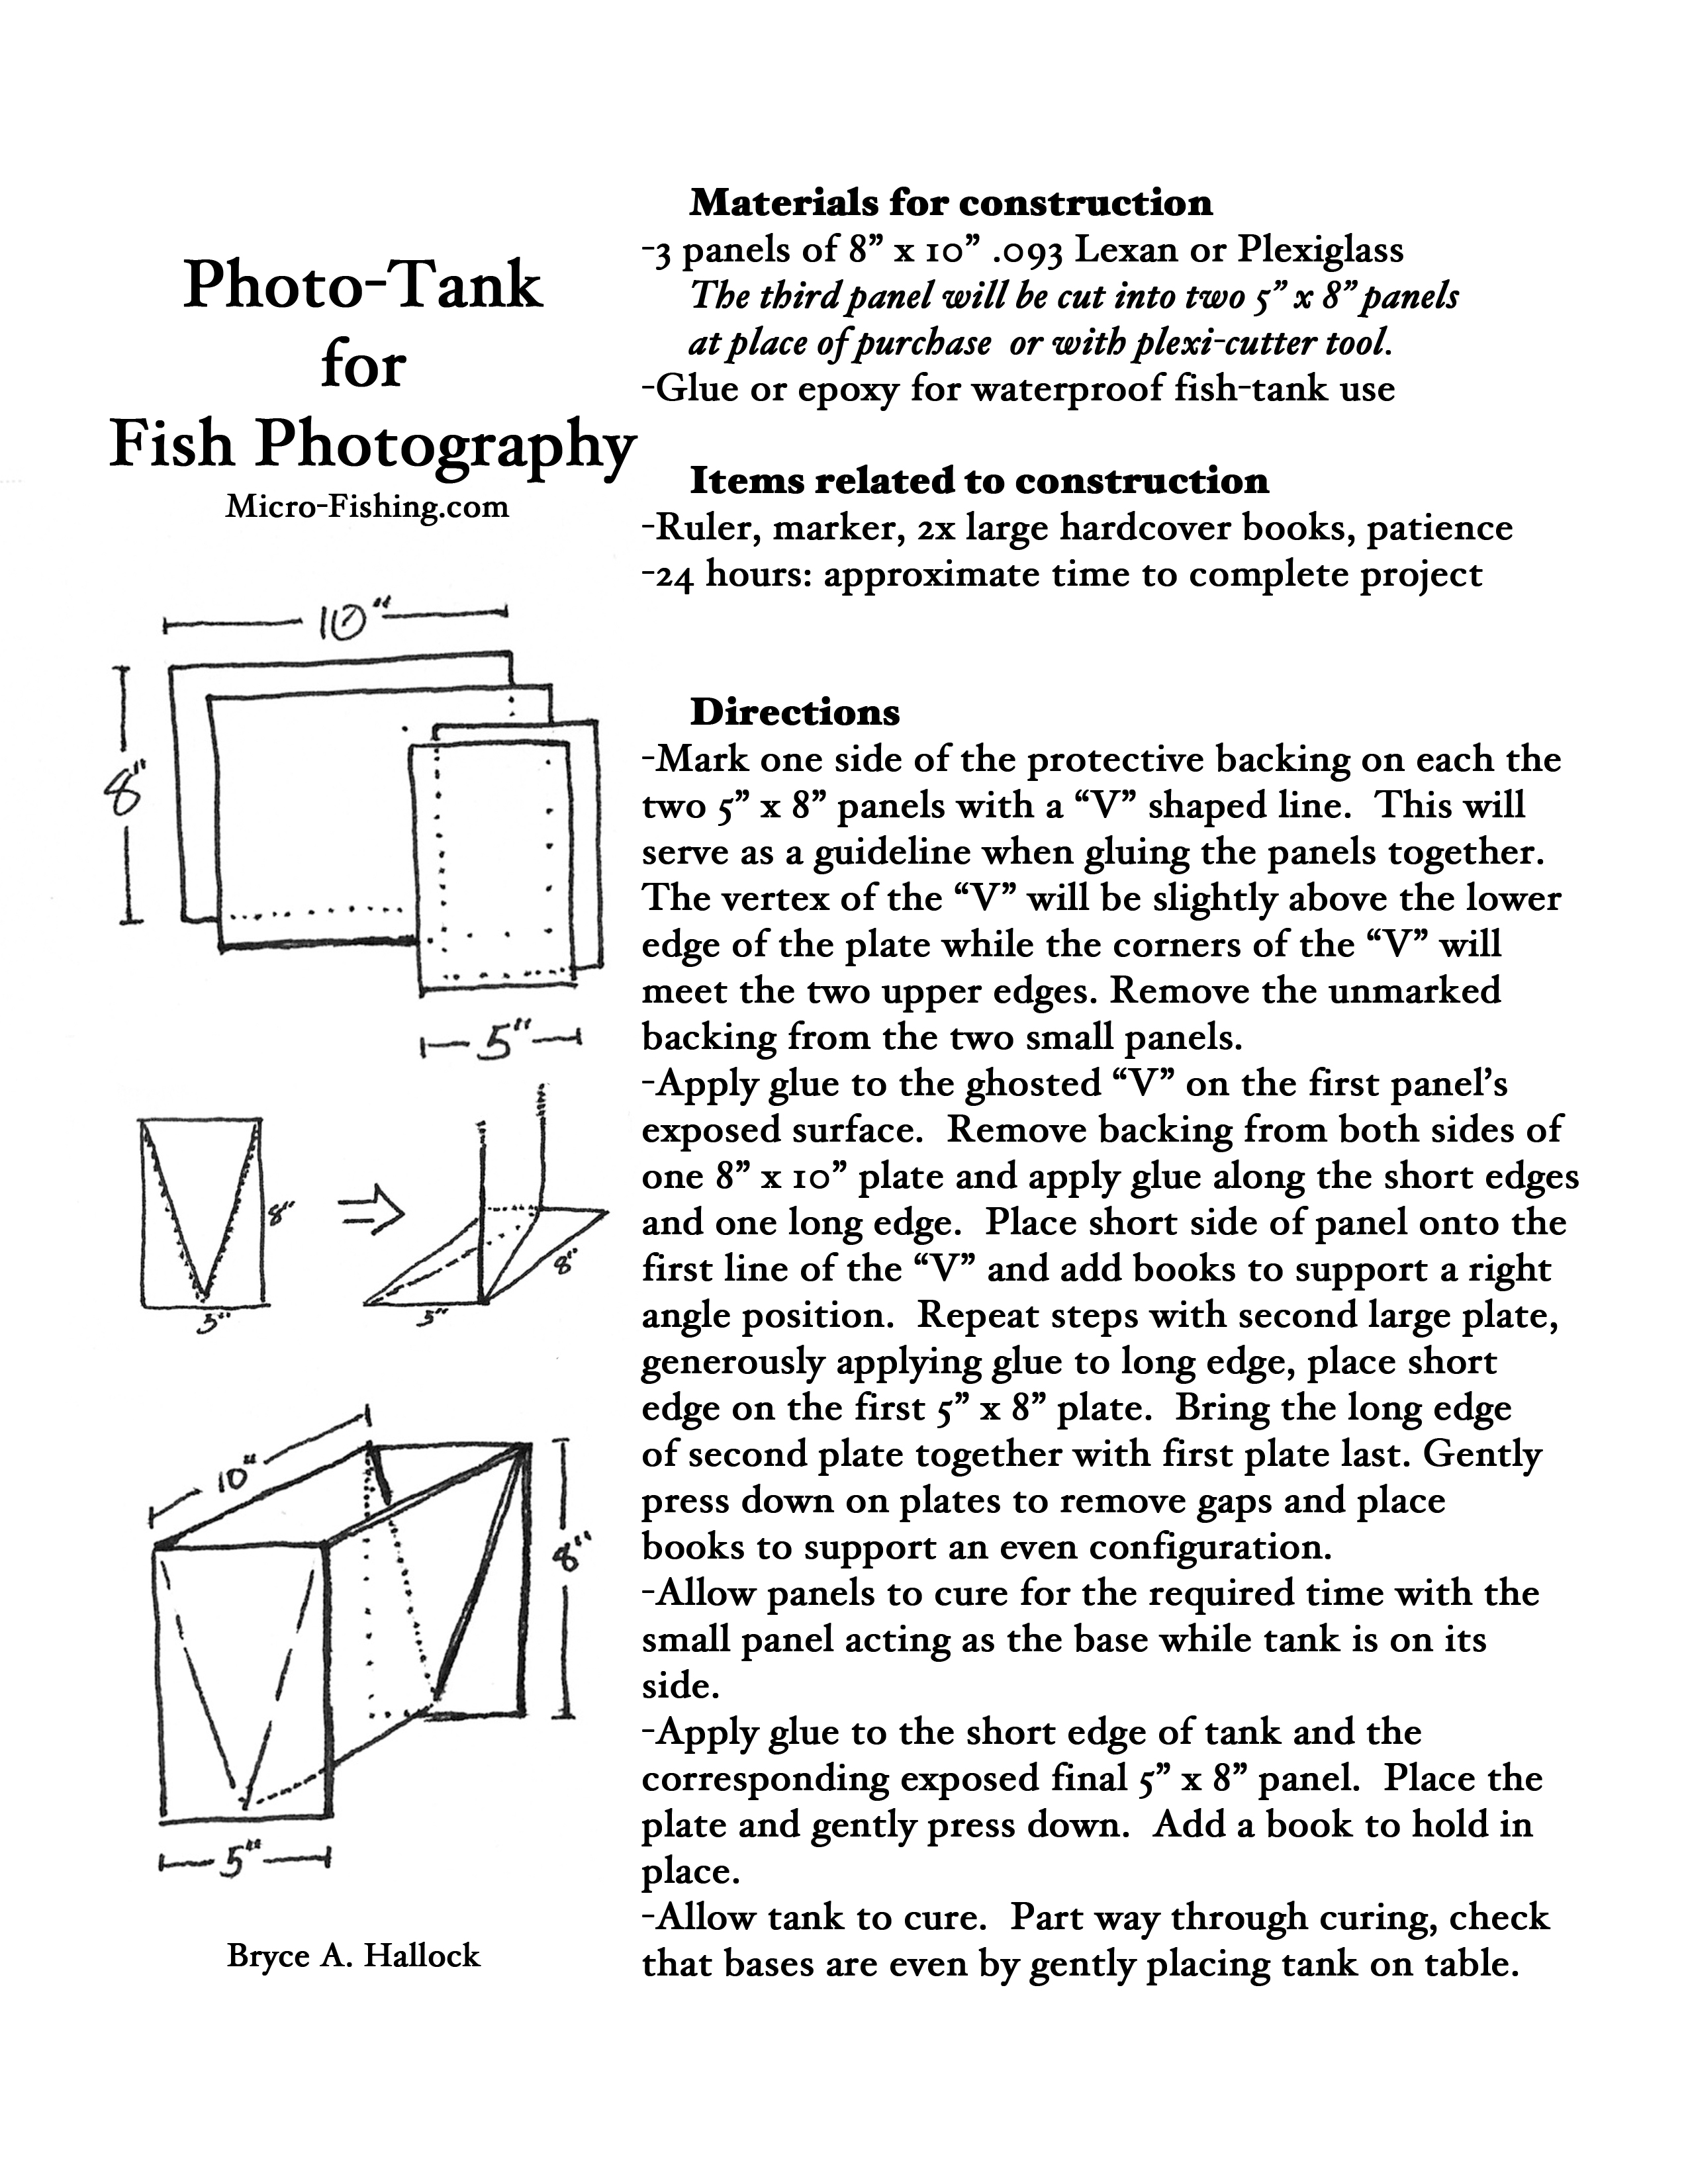 Freshwater fish in alabama - Plans For Photo Tank Used While Micro Fishing